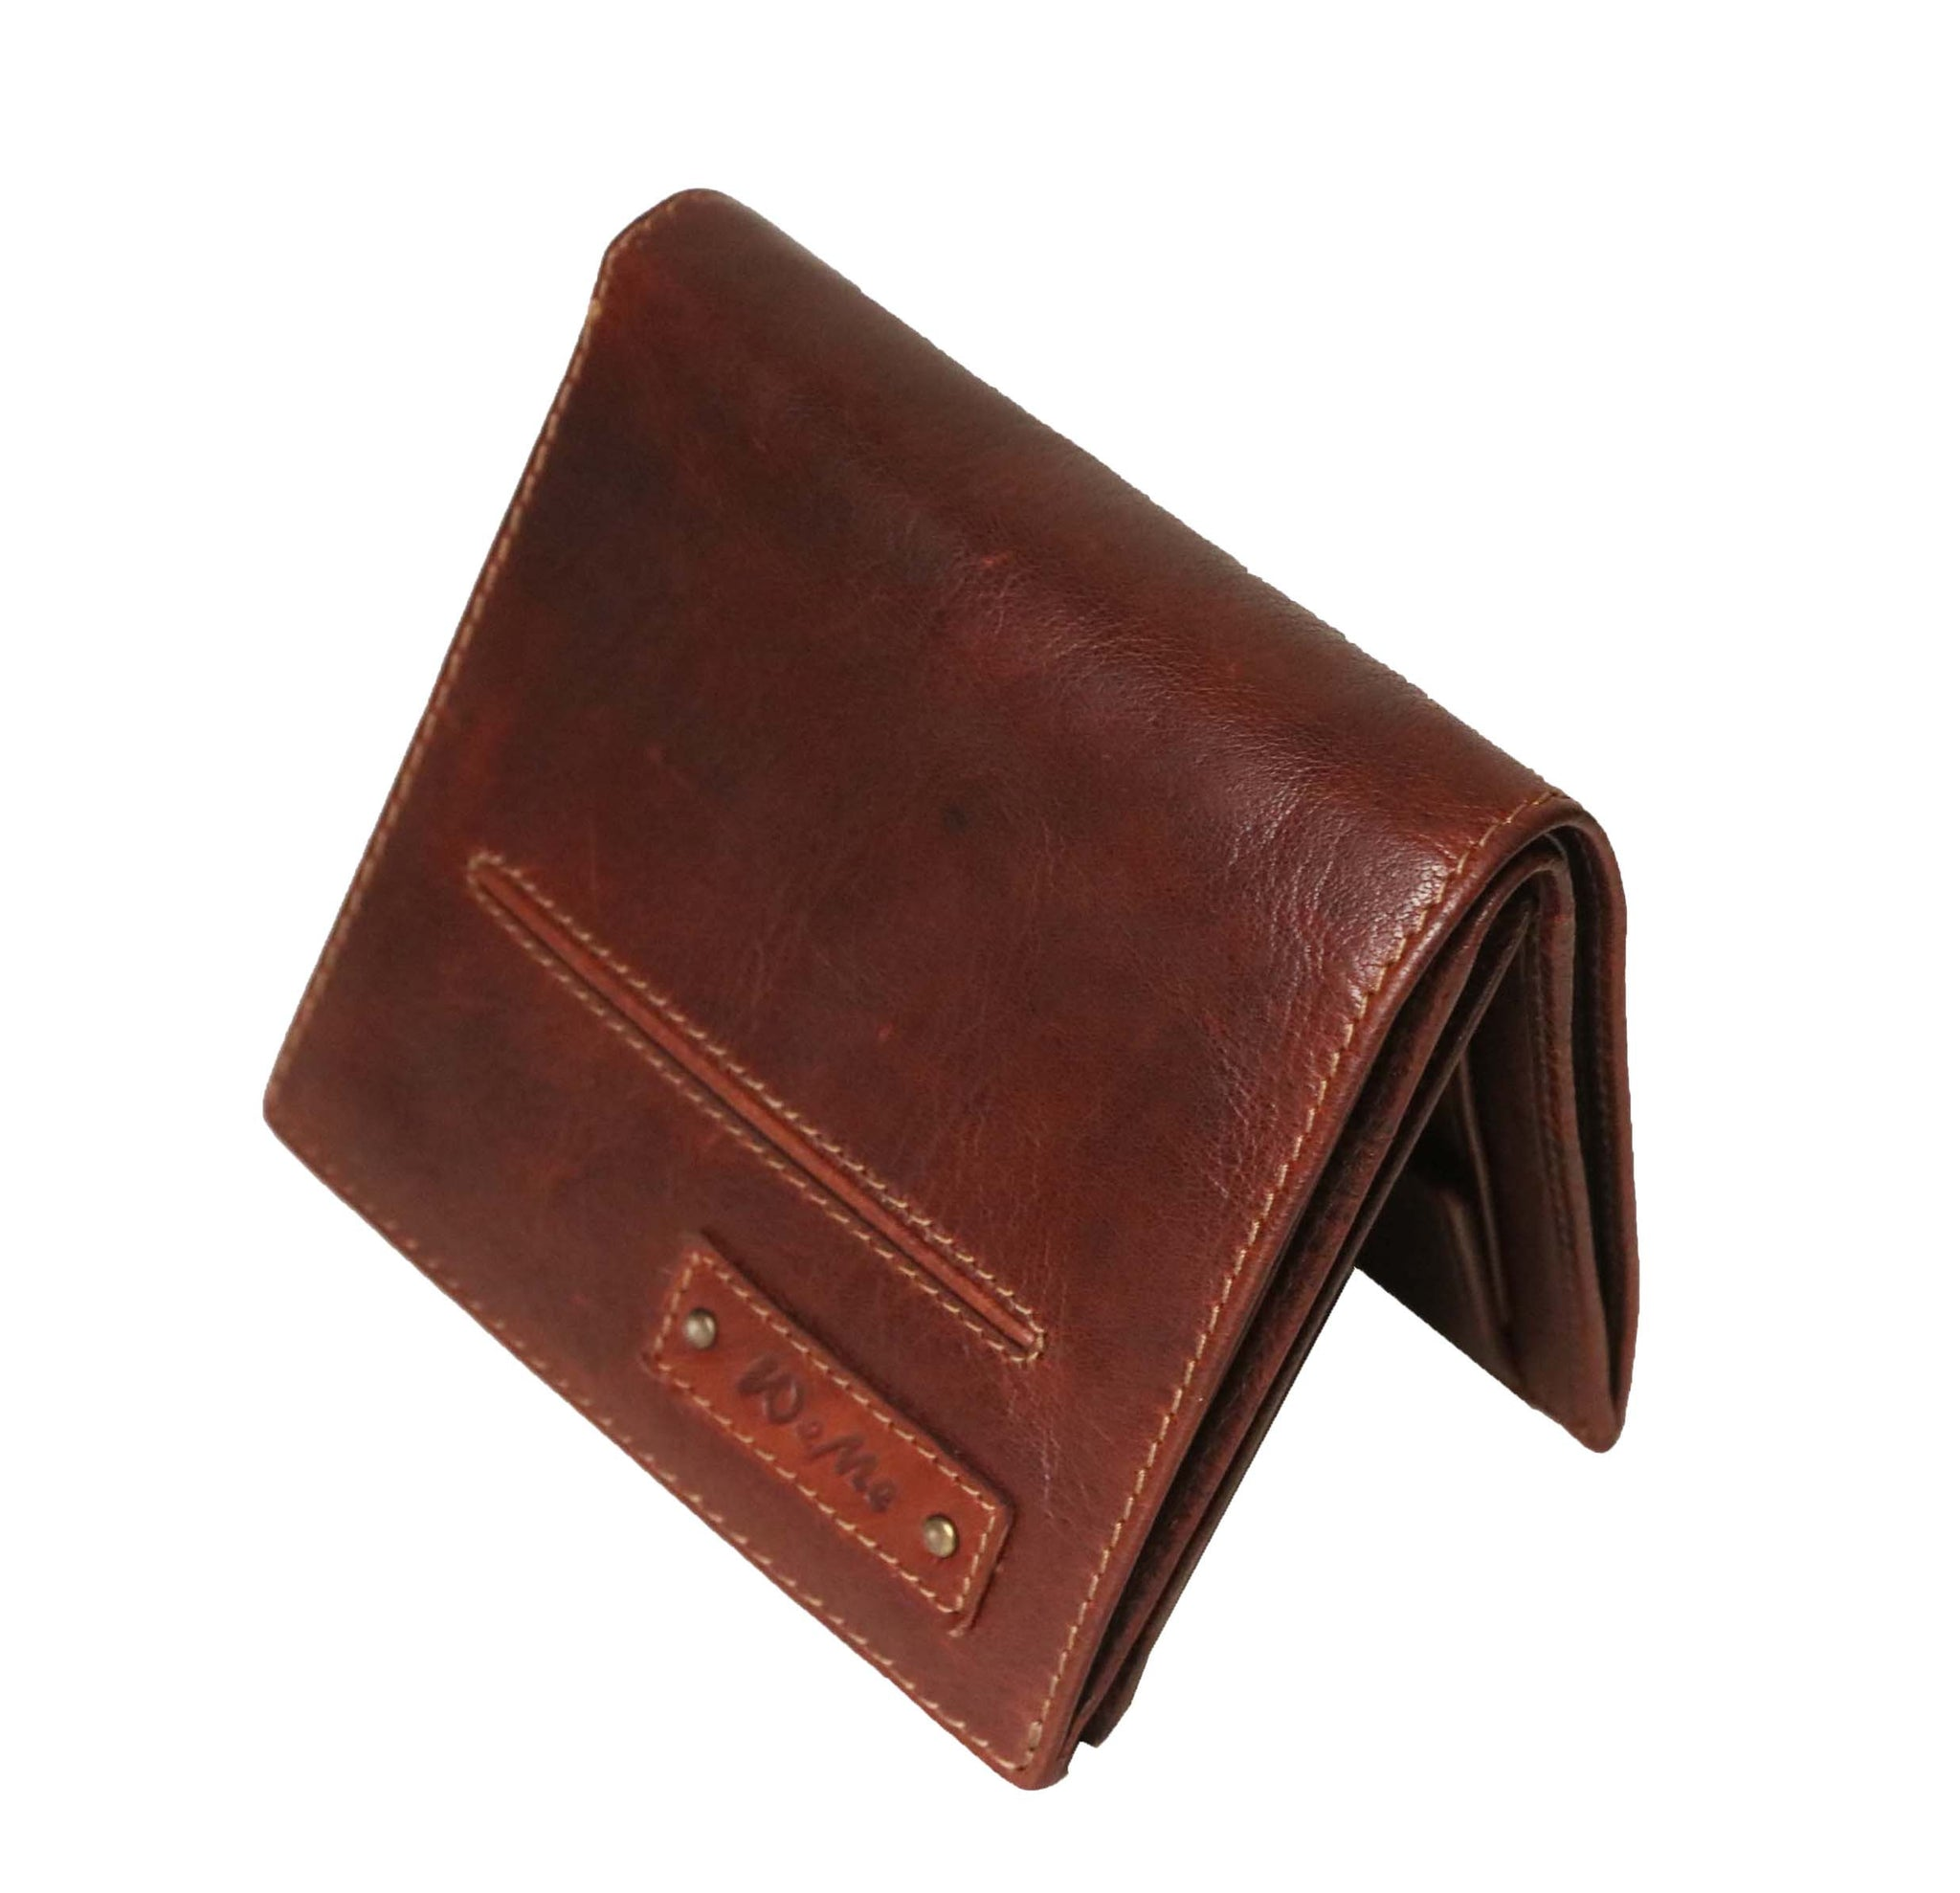 Designer Boston Genuine Leather Men Brown Billfold Wallet - WeMe